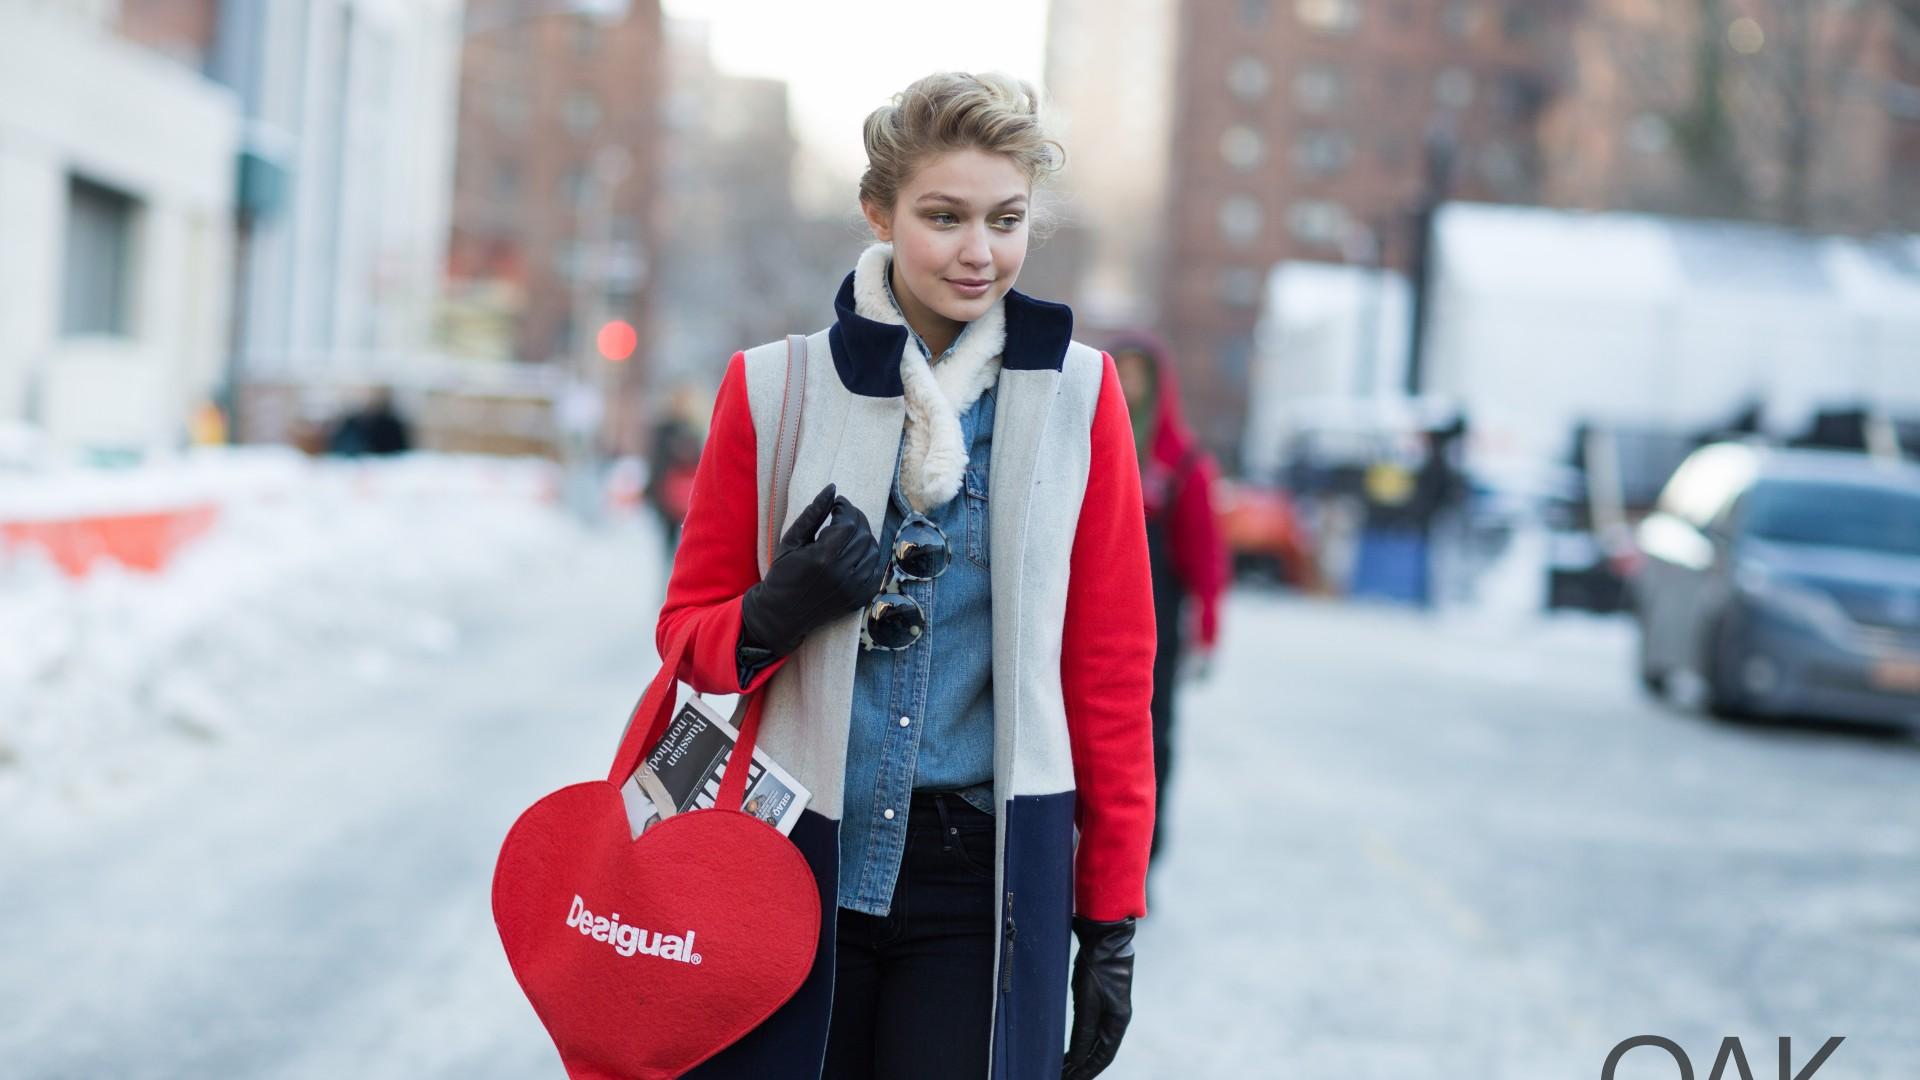 Gigi Hadid, Top Fashion Models 2015, model, TV personality, Real Housewives of Beverly Hills, street, blonde (horizontal)